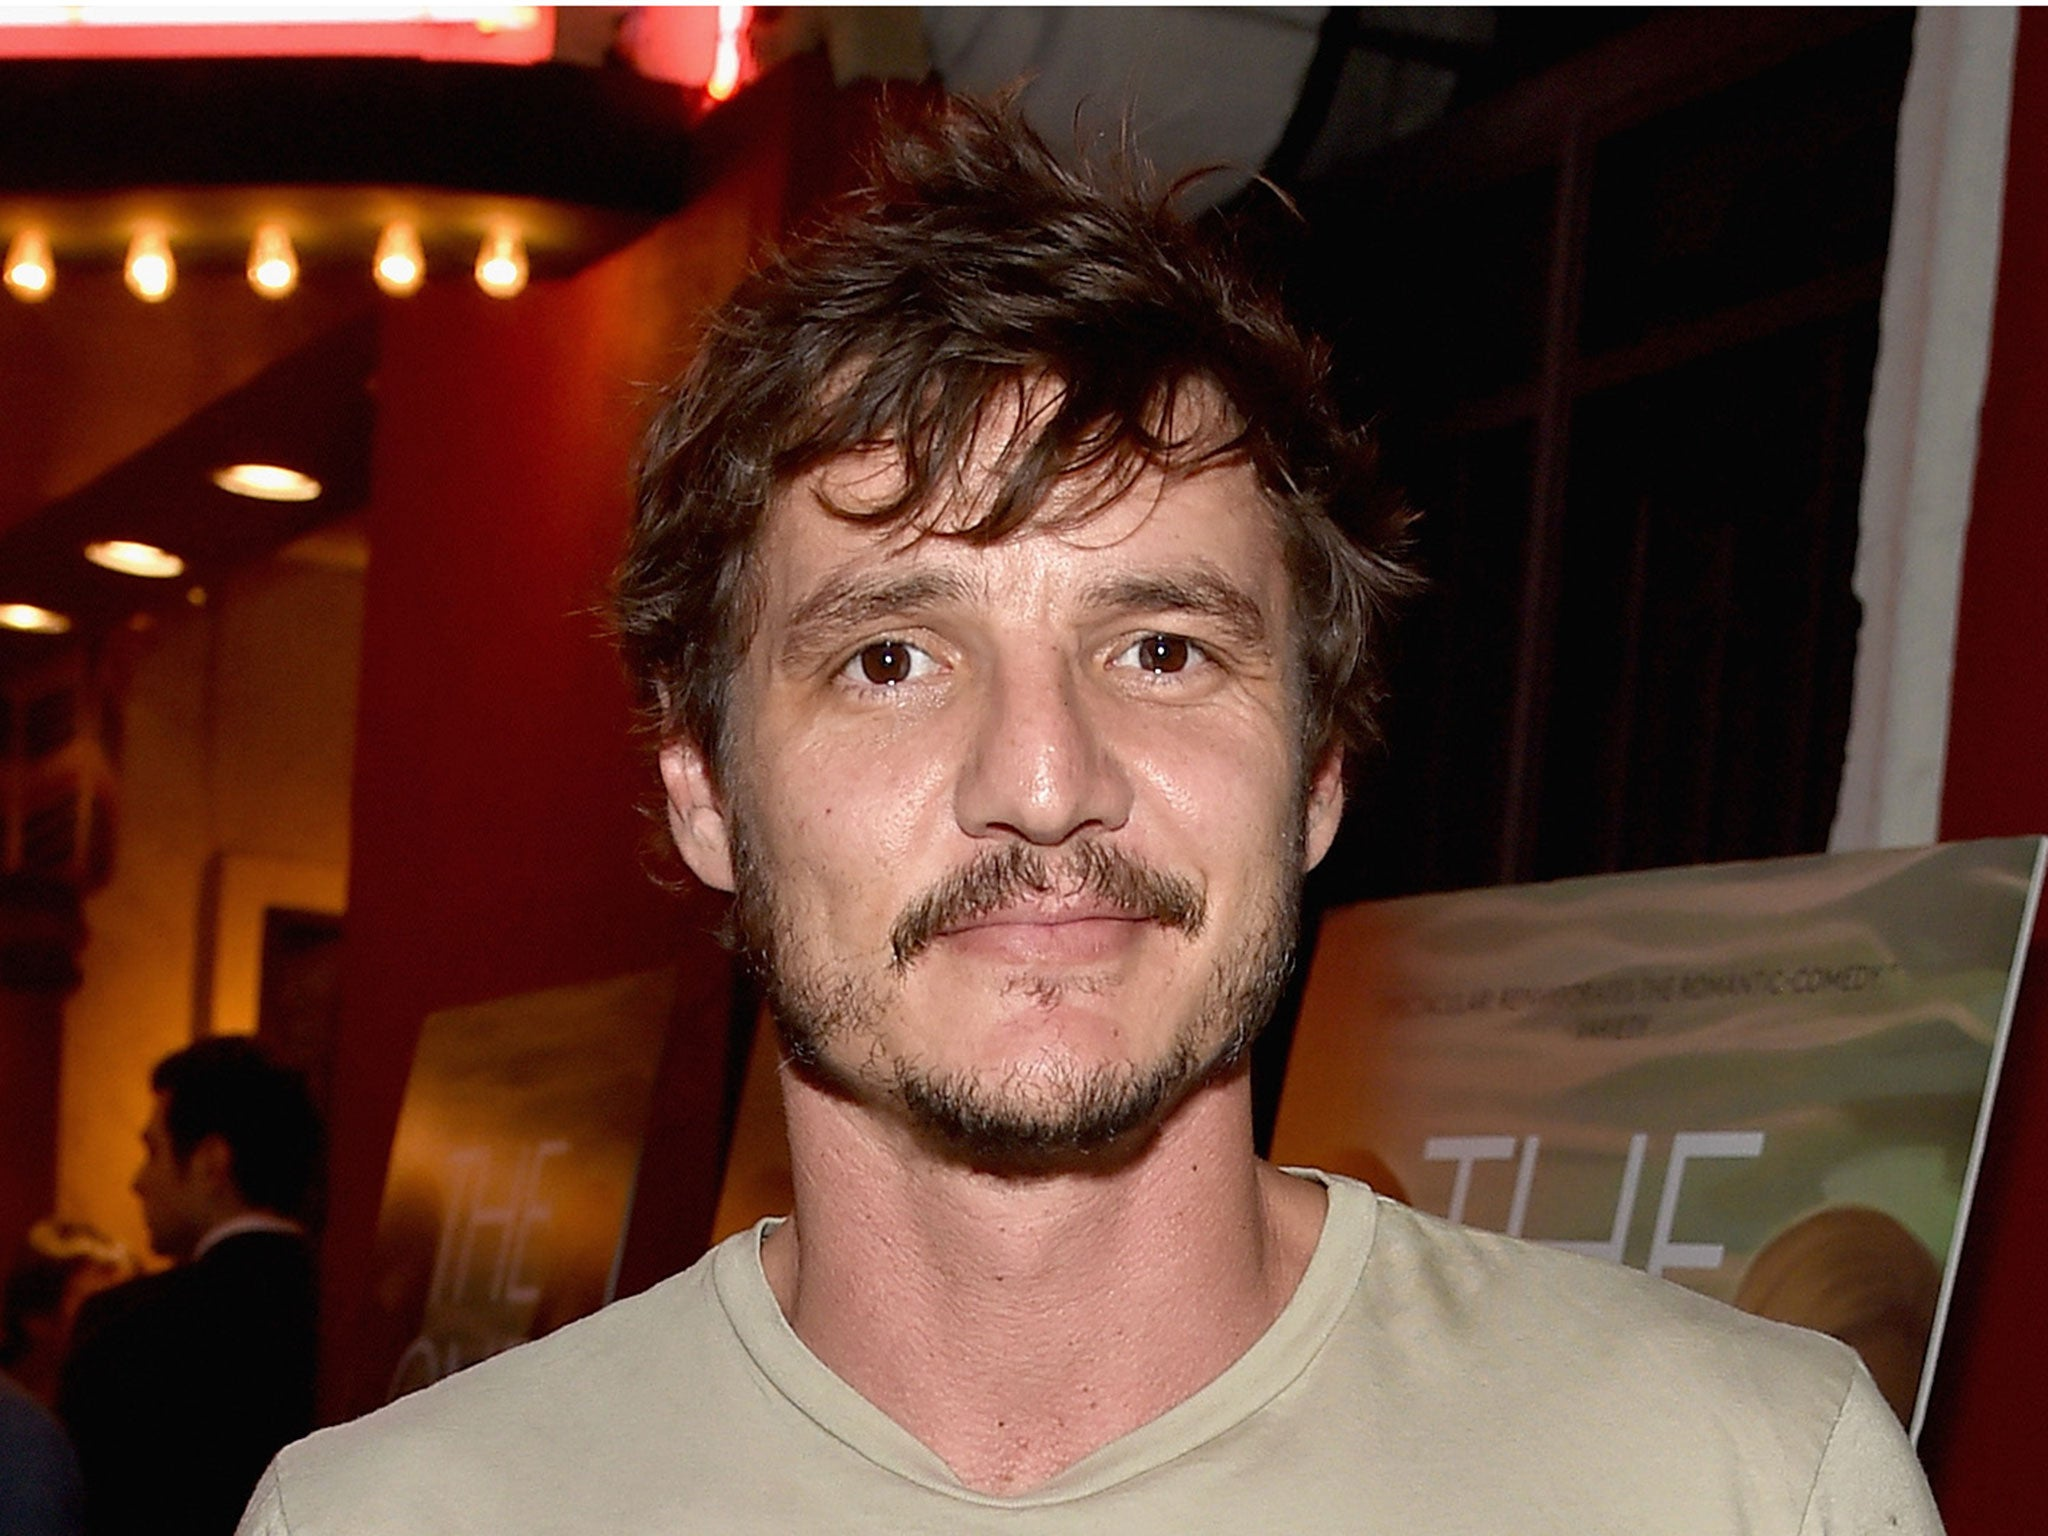 game of thrones actor pedro pascal to star in benhur